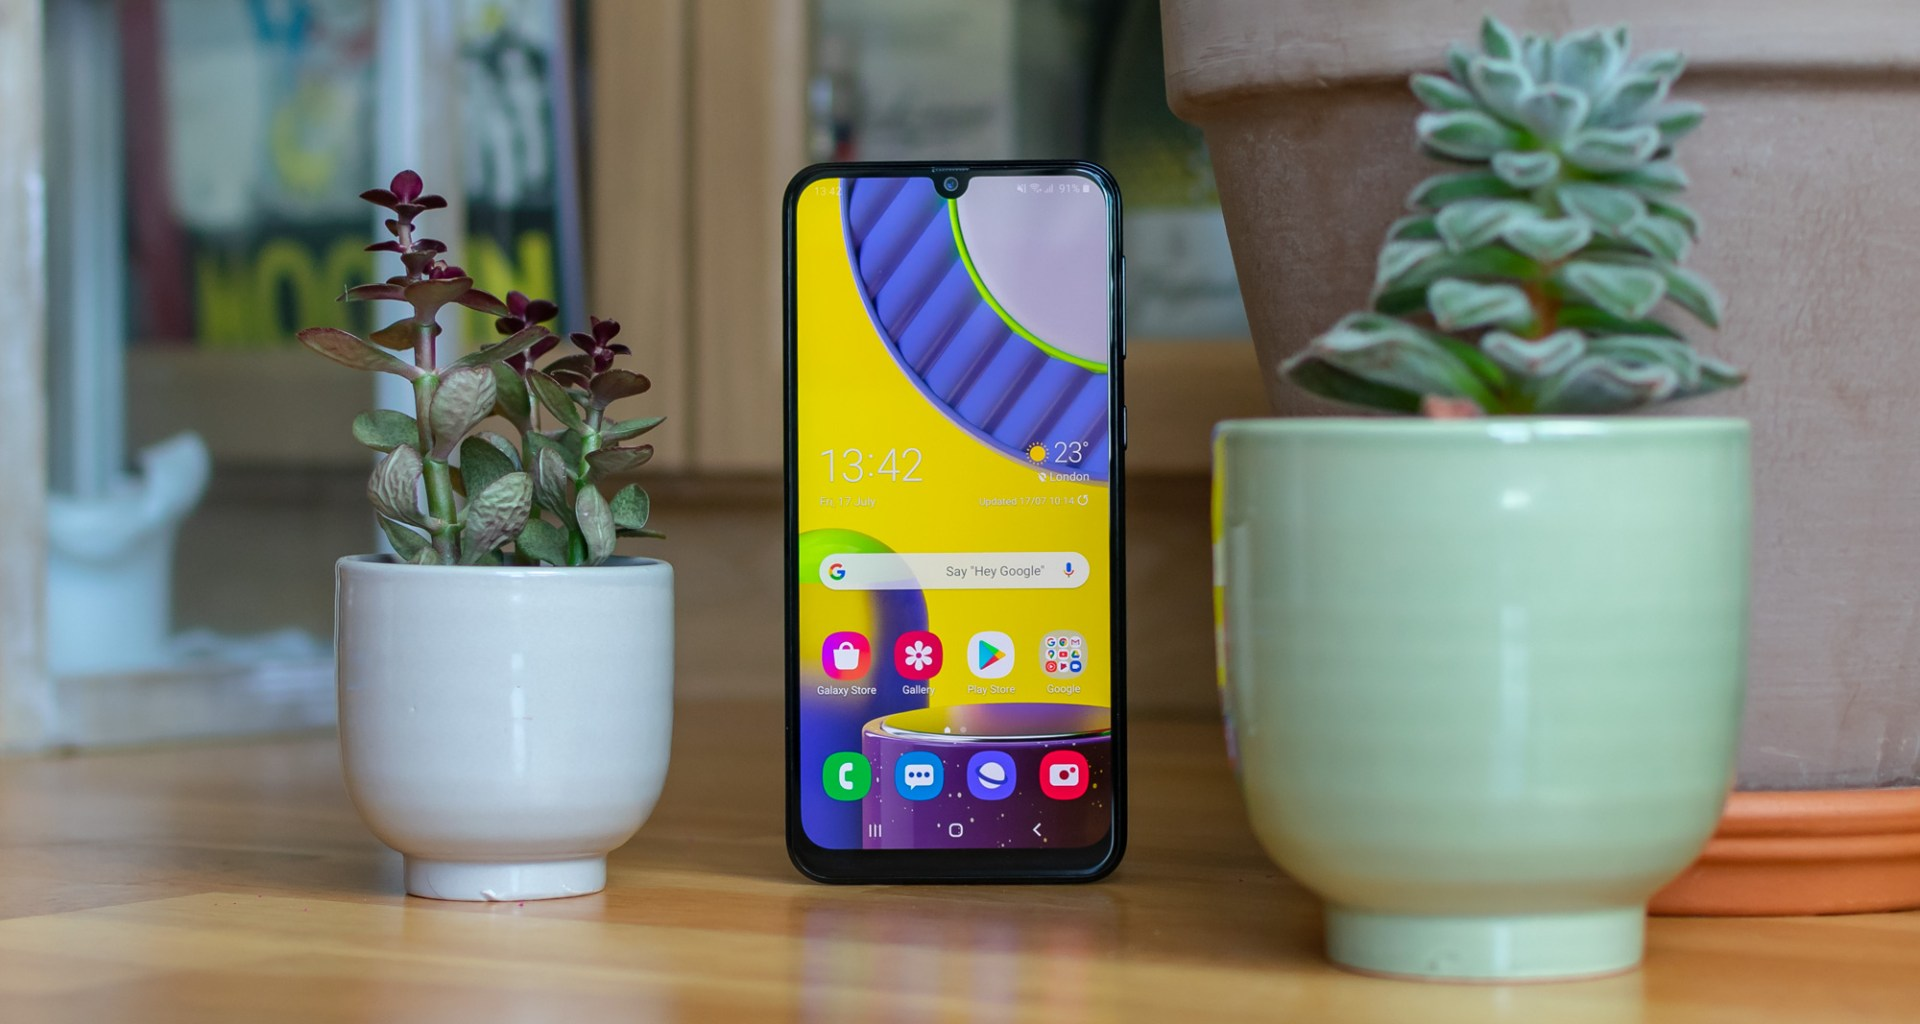 samsung galaxy m31 review 3 - Samsung Galaxy M31 price in Nigeria & Full Specs